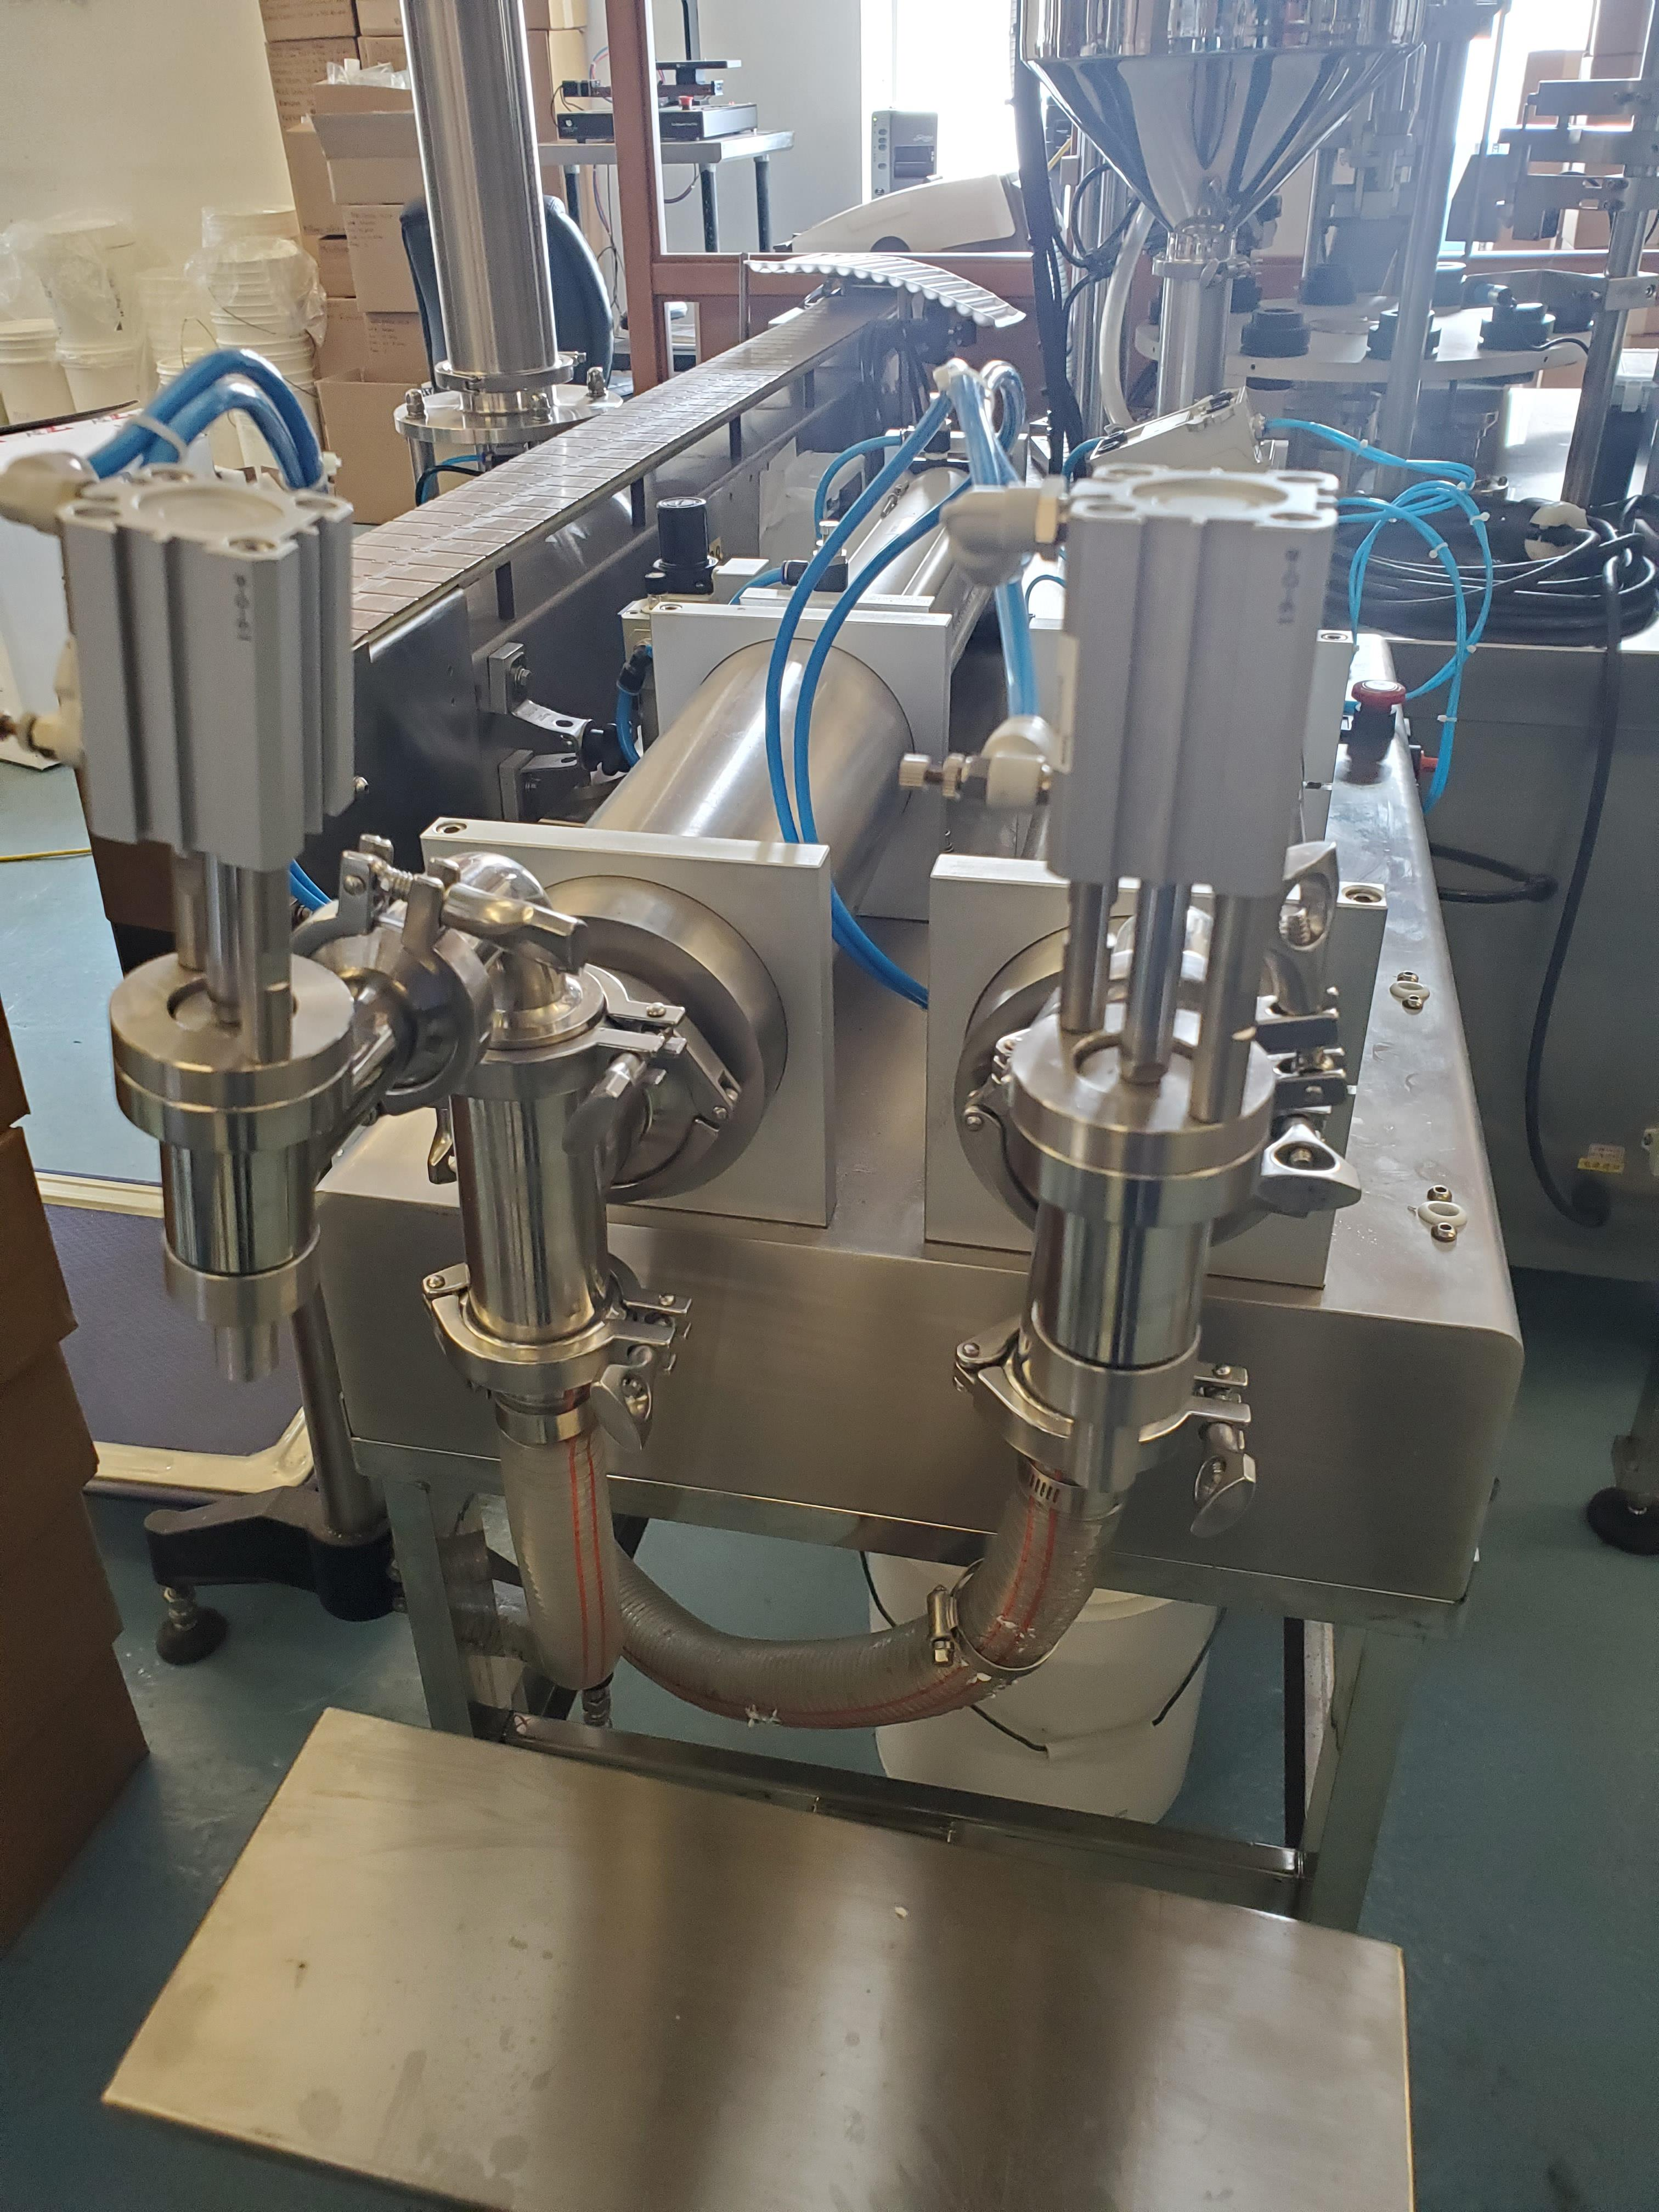 Dual Nozzle Stainless Steel Piston Filler - Image 3 of 4